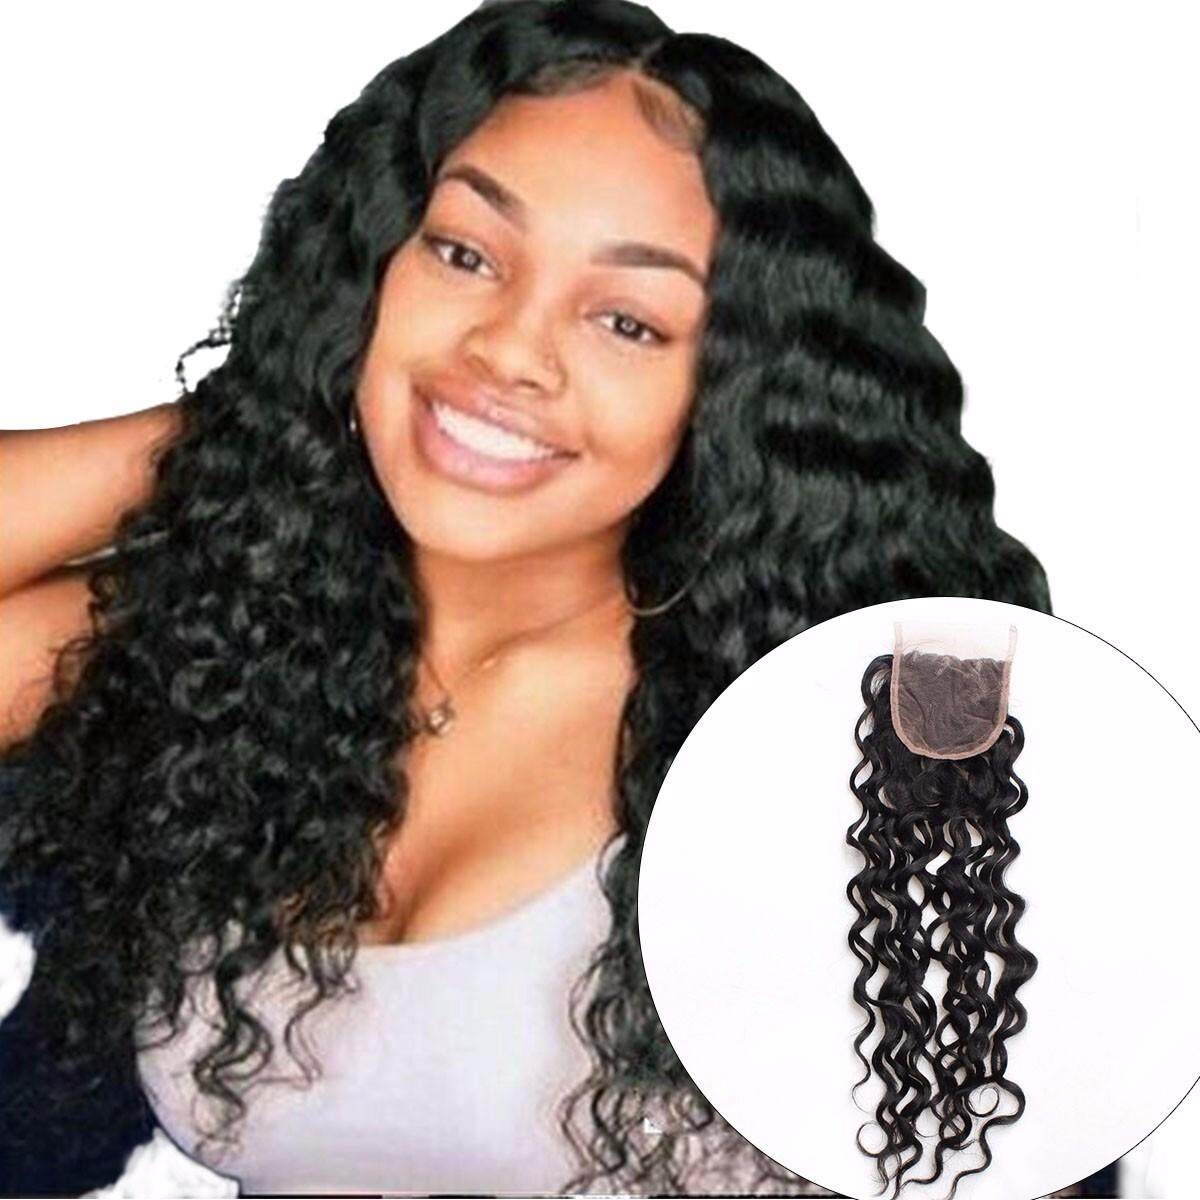 Hair Care Accessories Wig Hair Extensions Pads Buy Hair Care